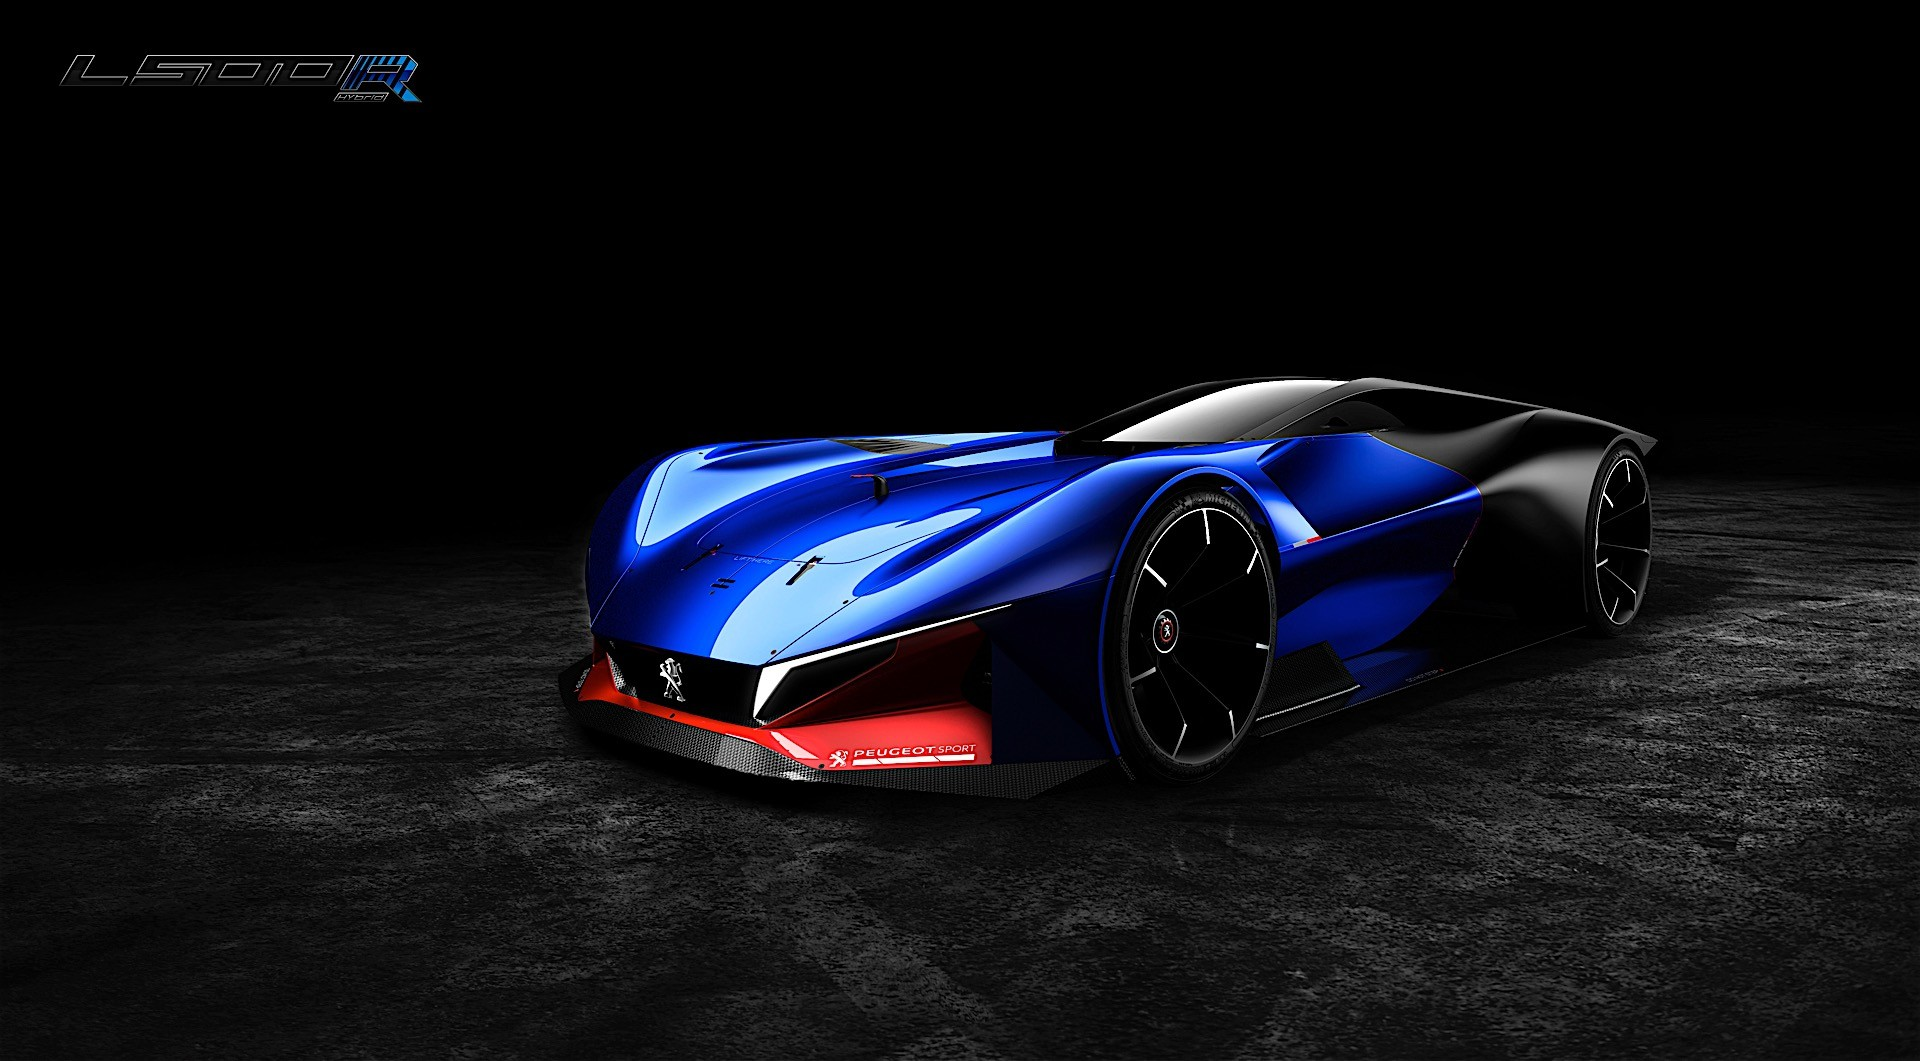 peugeot unveils l500 r hybrid concept to show how it sees the future of racing autoevolution. Black Bedroom Furniture Sets. Home Design Ideas